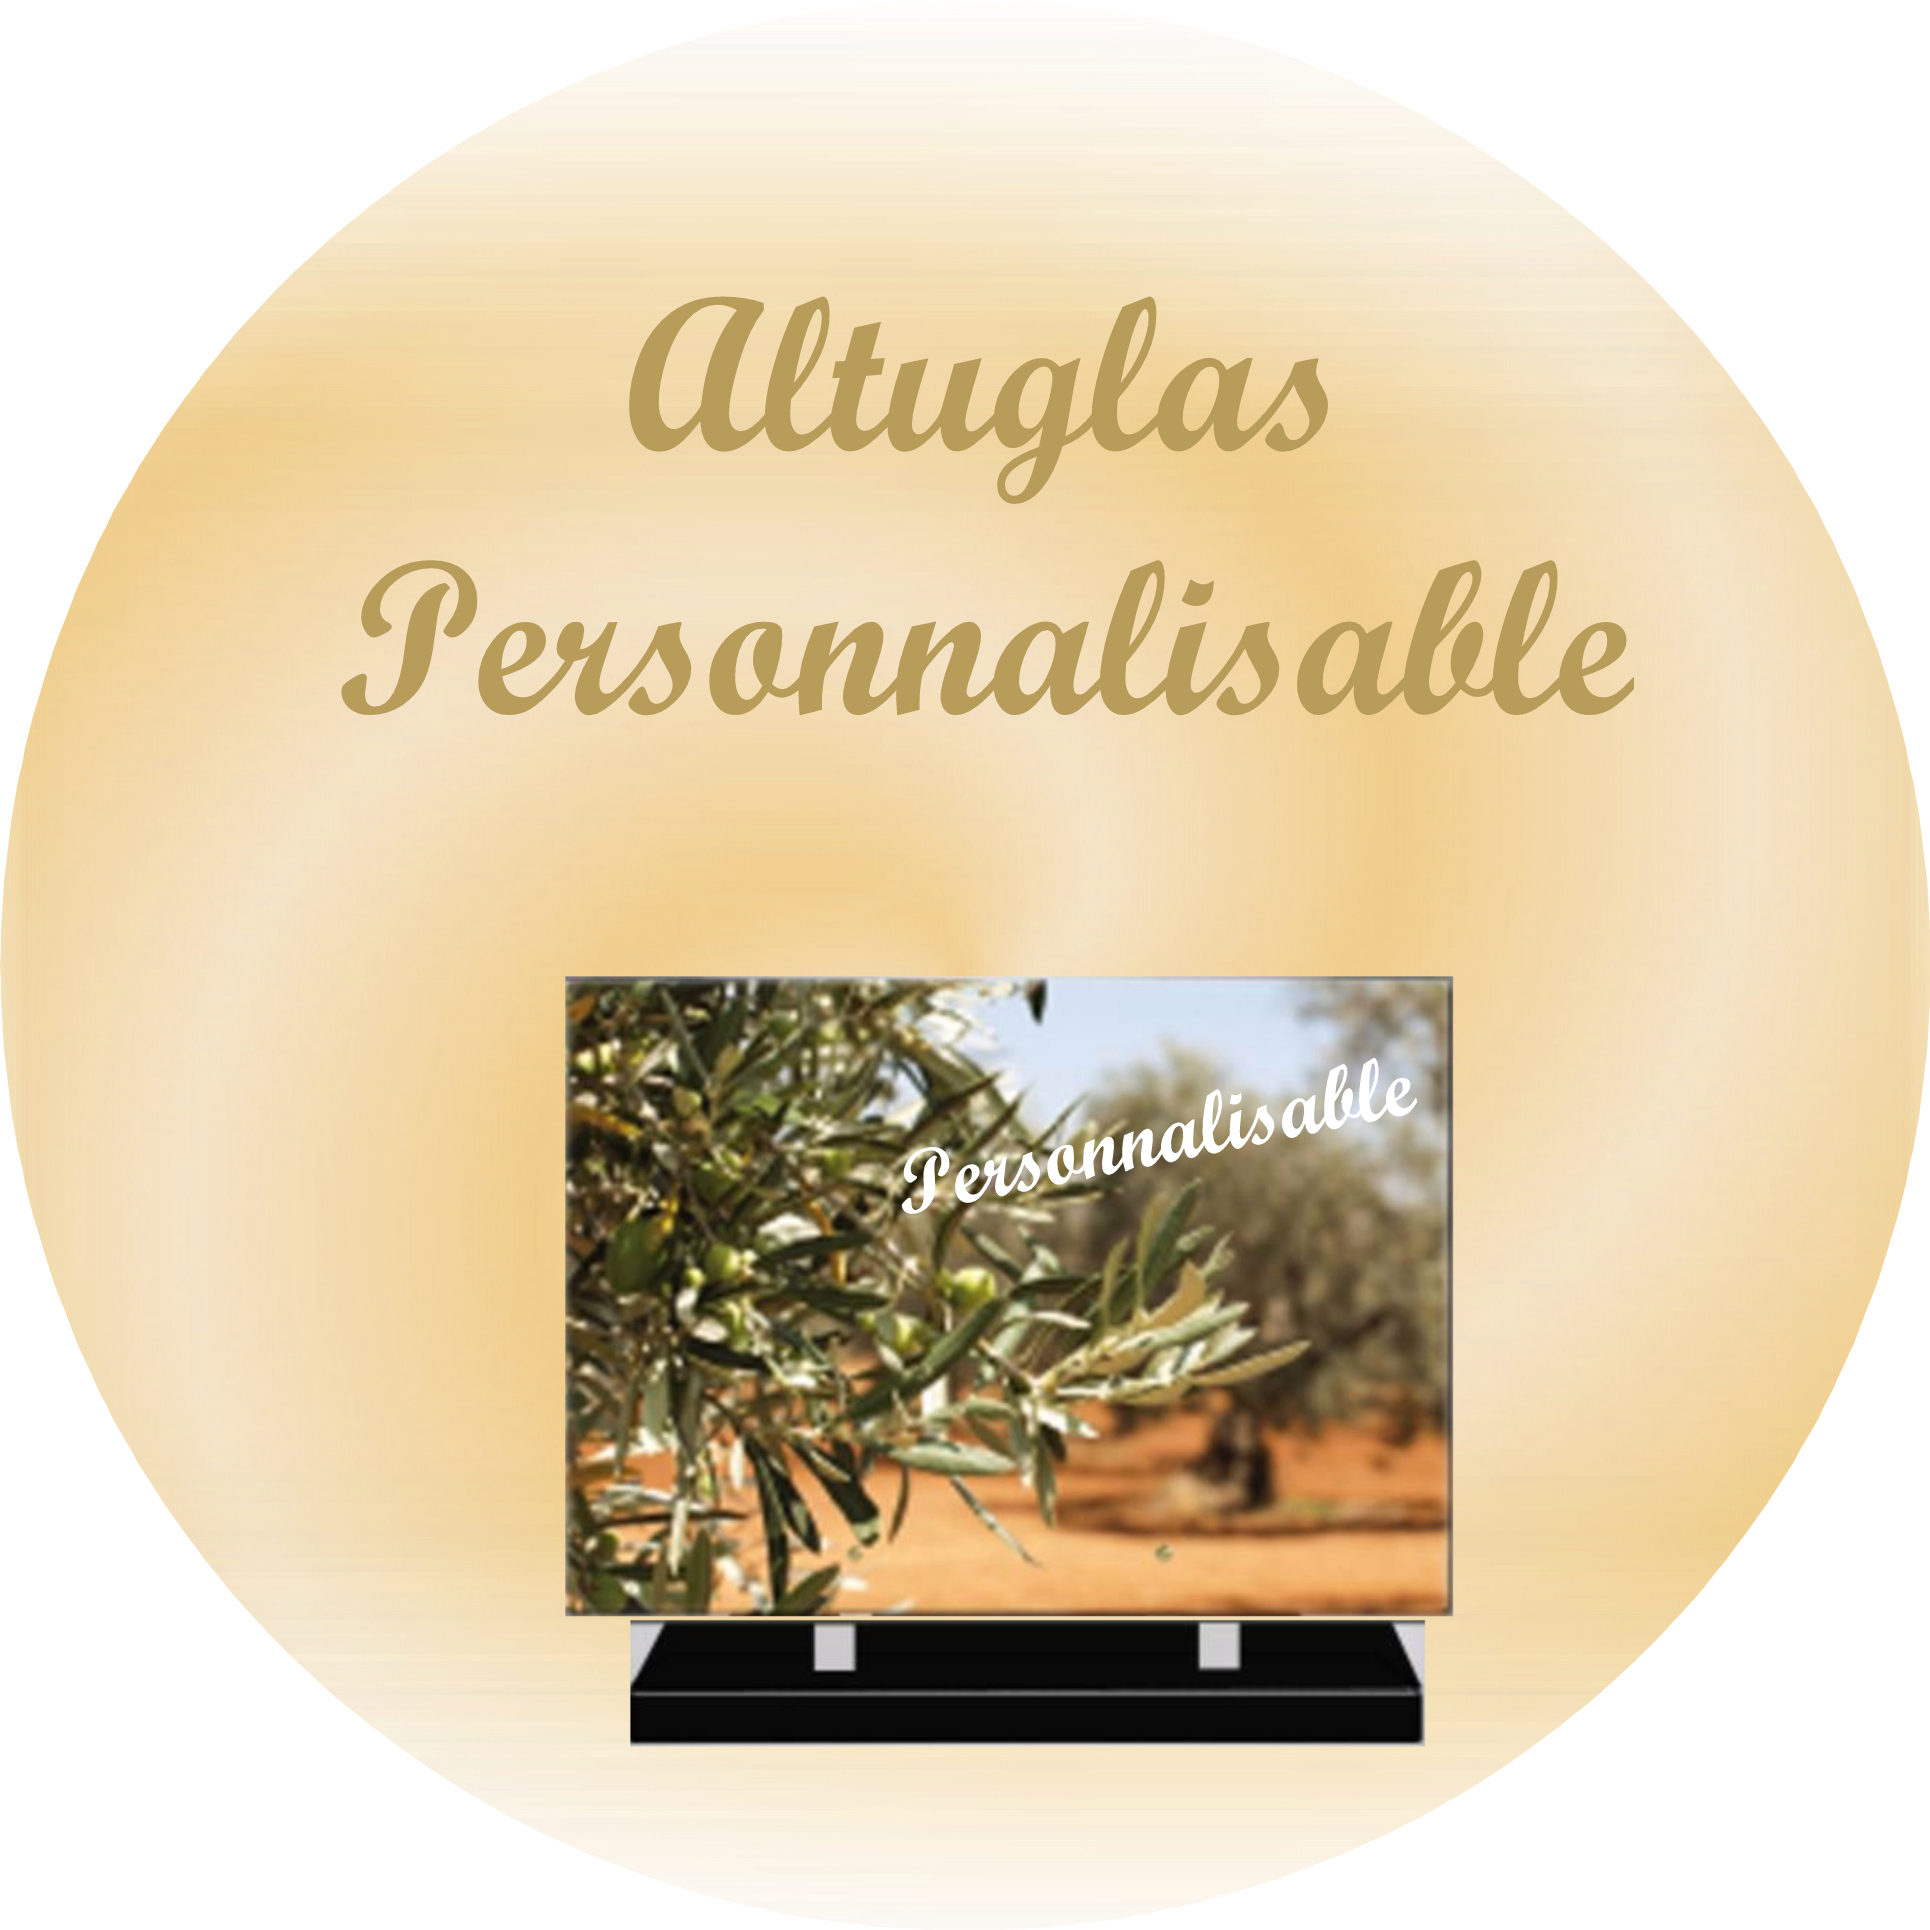 PLAQUES FUNERAIRES MODERNES PERSONNALISABLES RECTANGLE TINCHEBRAY